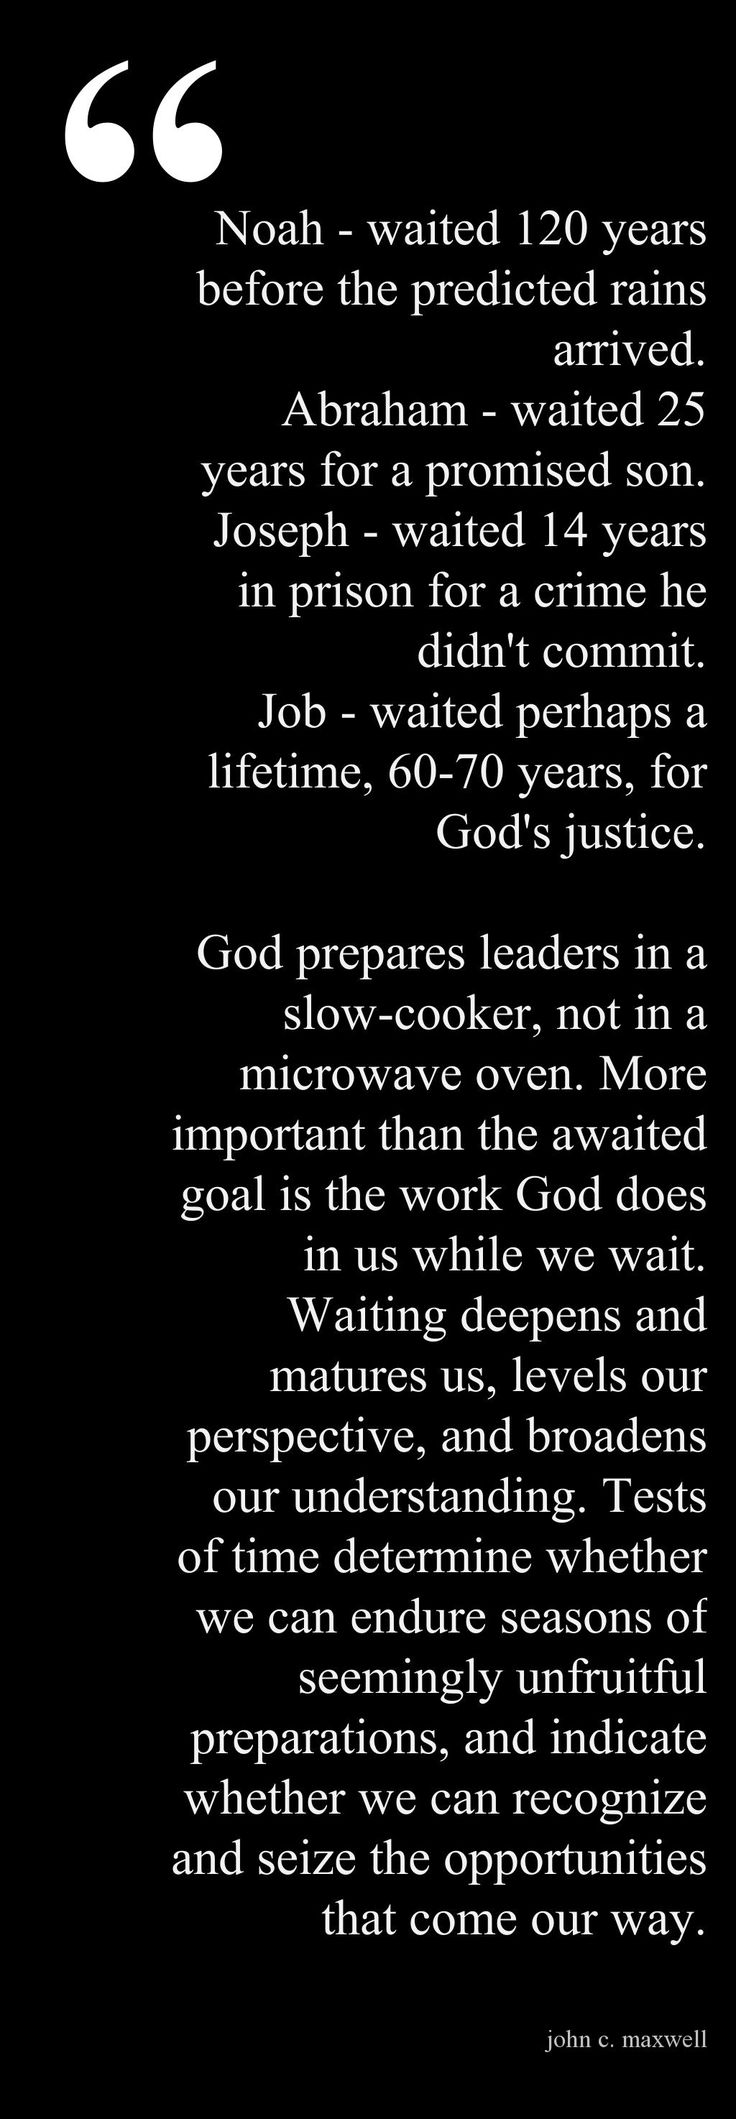 God prepares leaders in a slow cooker not in a microwave oven More important than the awaited goal is the work God does in us while we wait